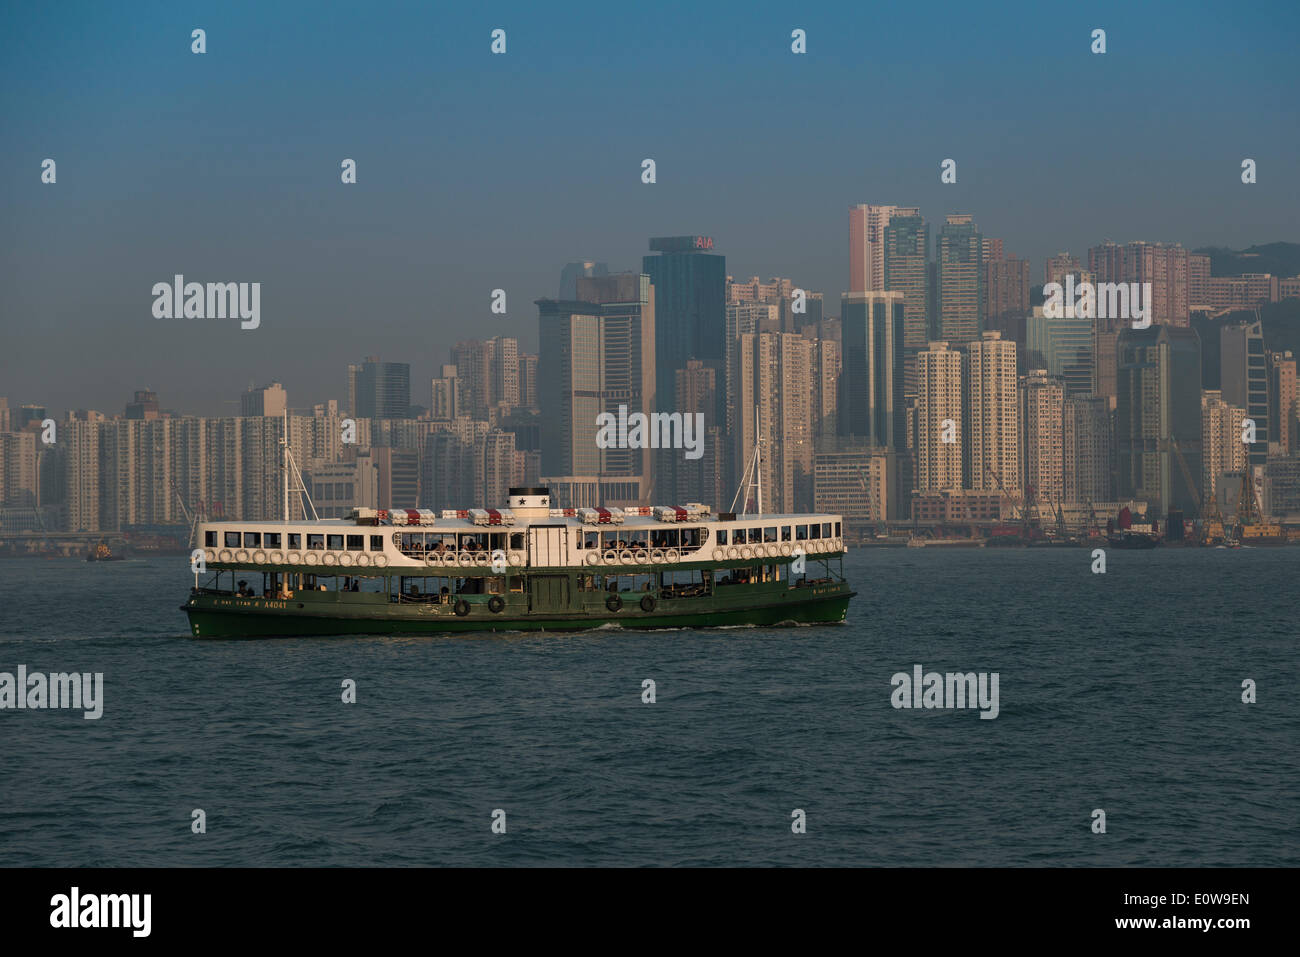 Ferry from Kowloon, Star Ferry, in front of the skyline of Hong Kong Island, Hong Kong, China Stock Photo